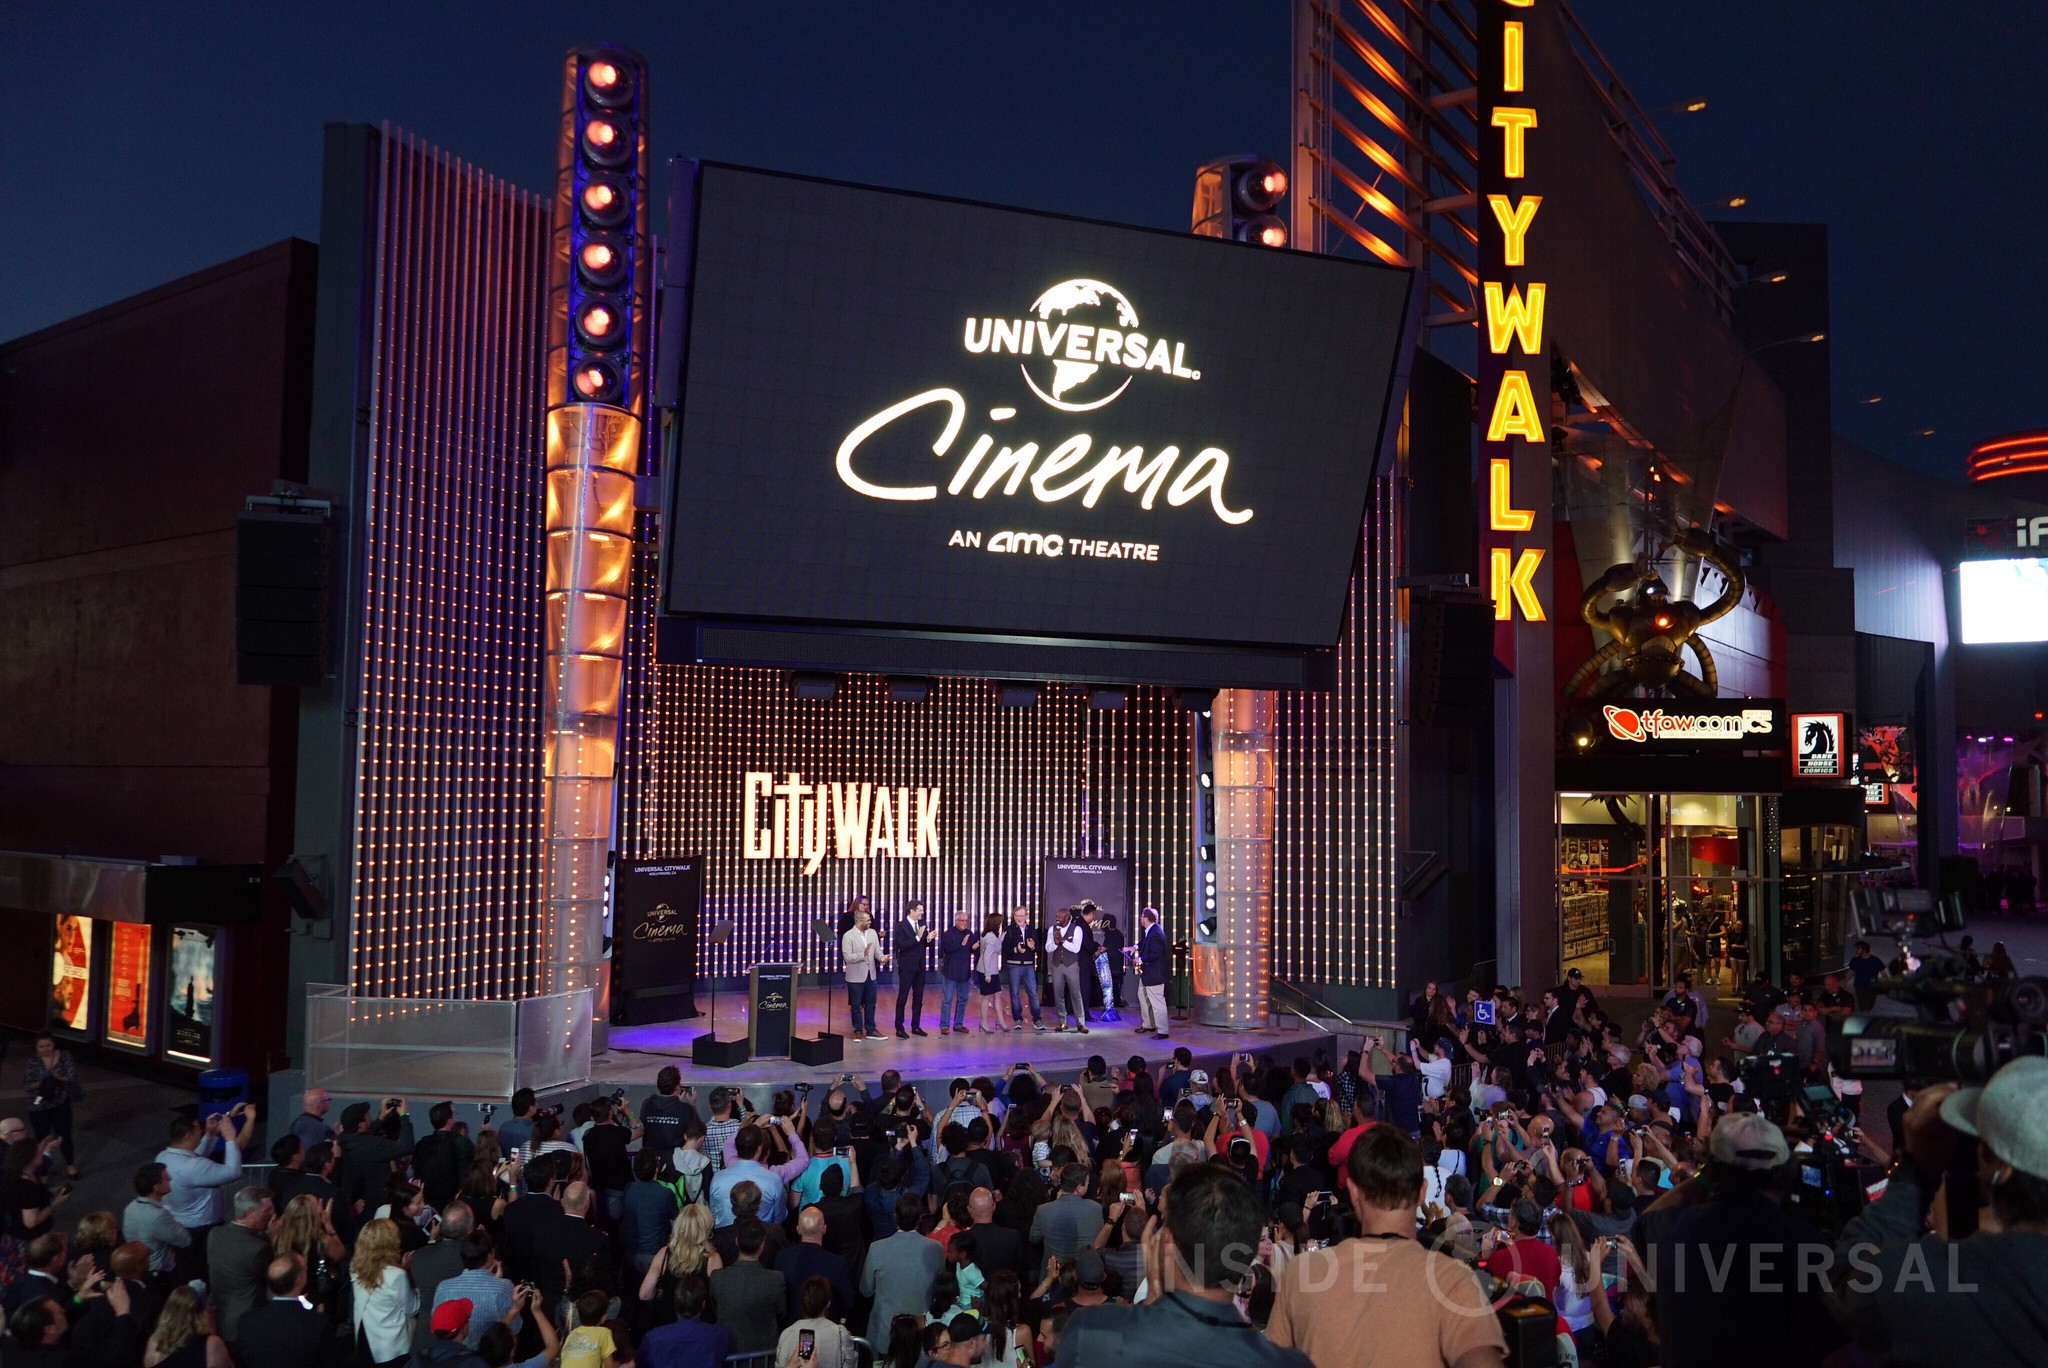 Universal Cinema opens with Steven Spielberg, Ron Meyer, Jason Blum and Jordan Peele at CityWalk Hollywood